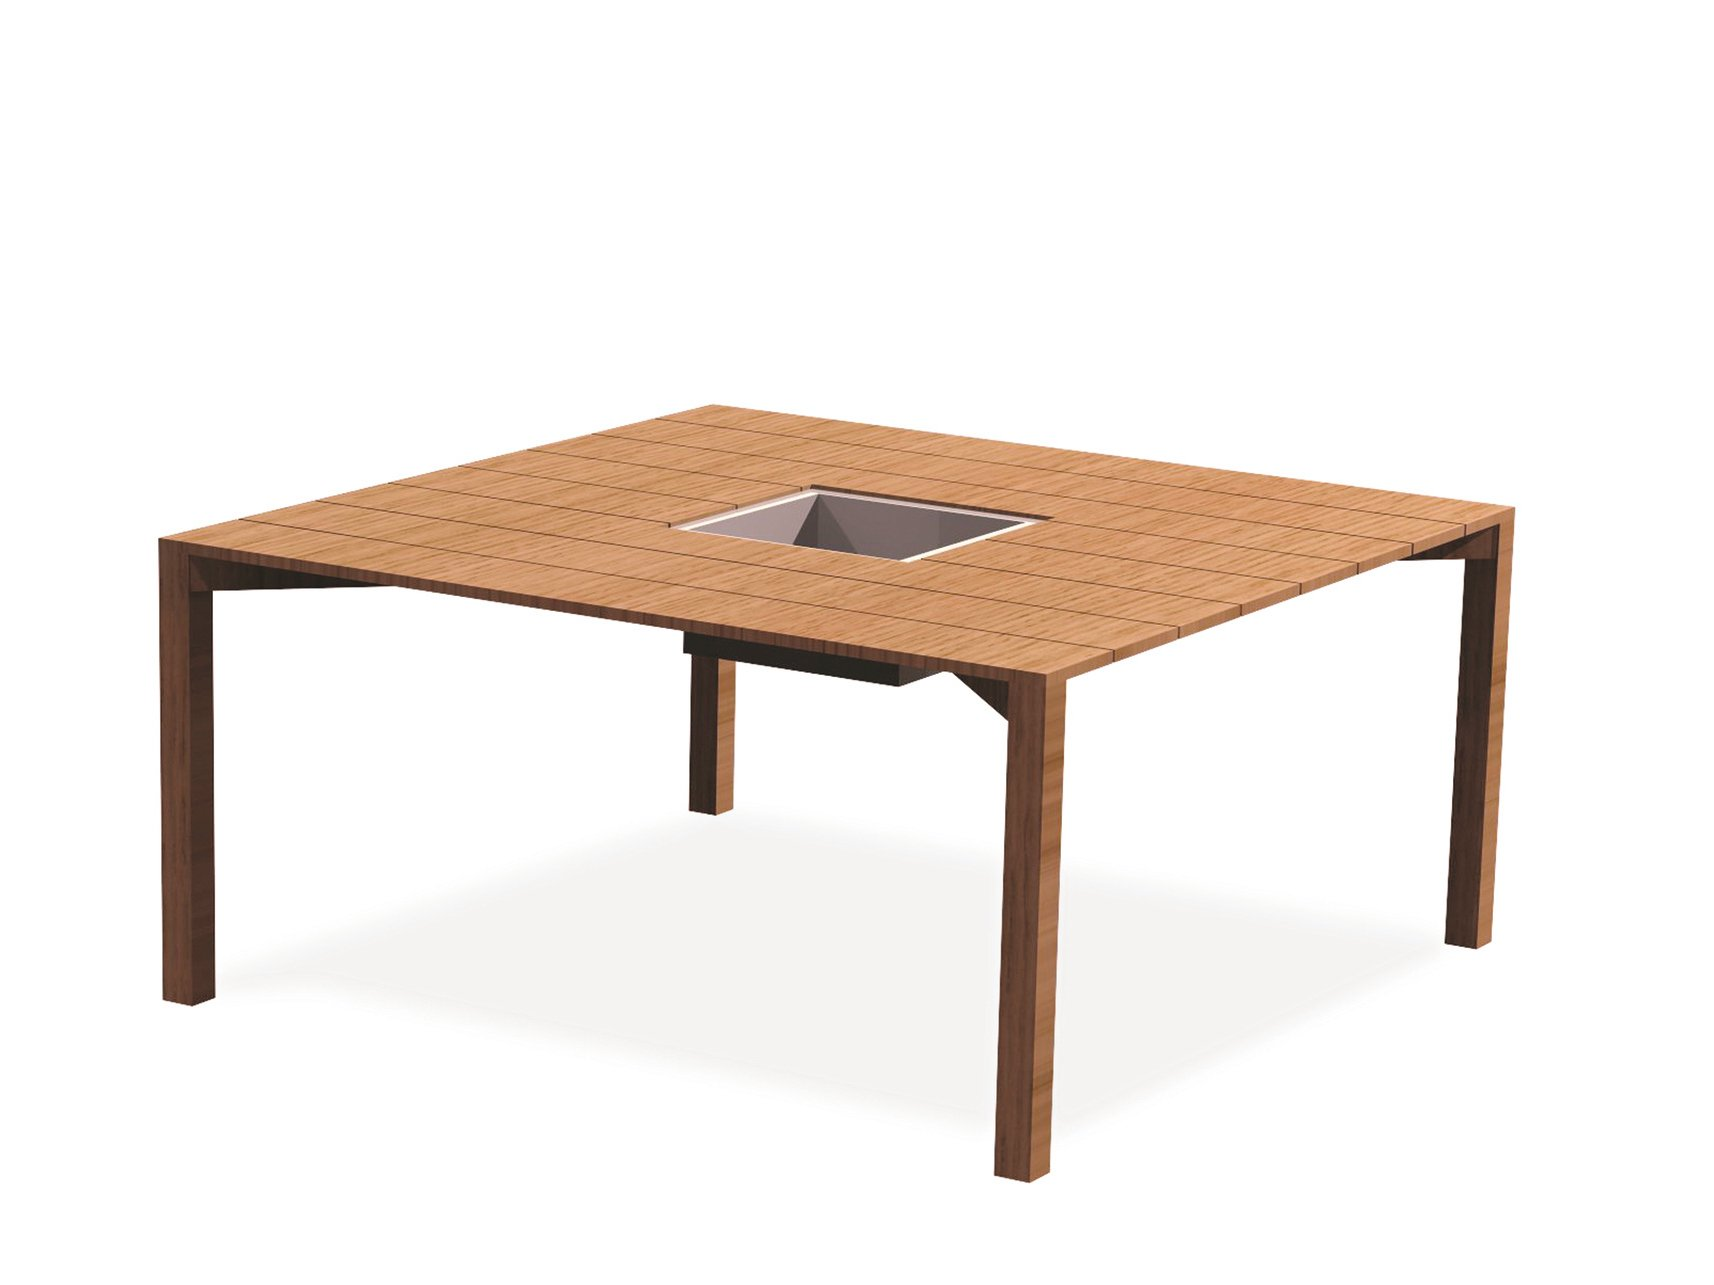 Table de jardin carr e en teck oxn collection oxn by for Table de jardin en teck